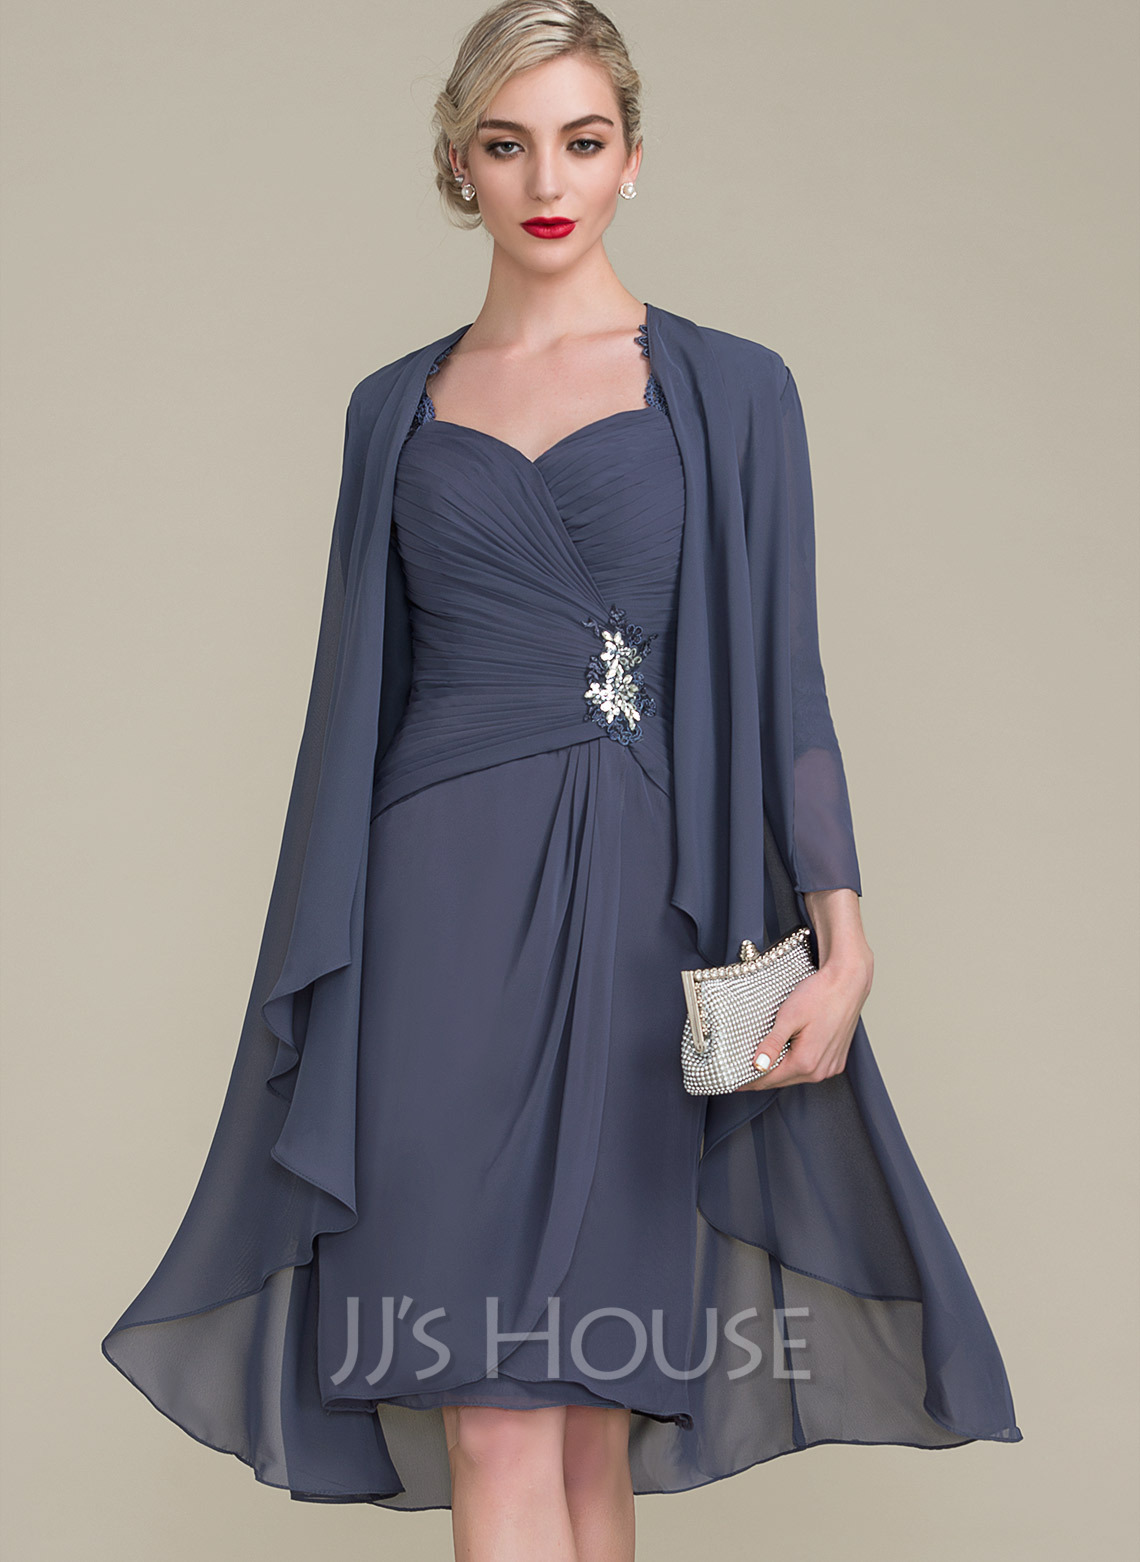 Sheath/Column Sweetheart Knee-Length Chiffon Mother of the Bride Dress With Ruffle Beading Appliques Lace Sequins